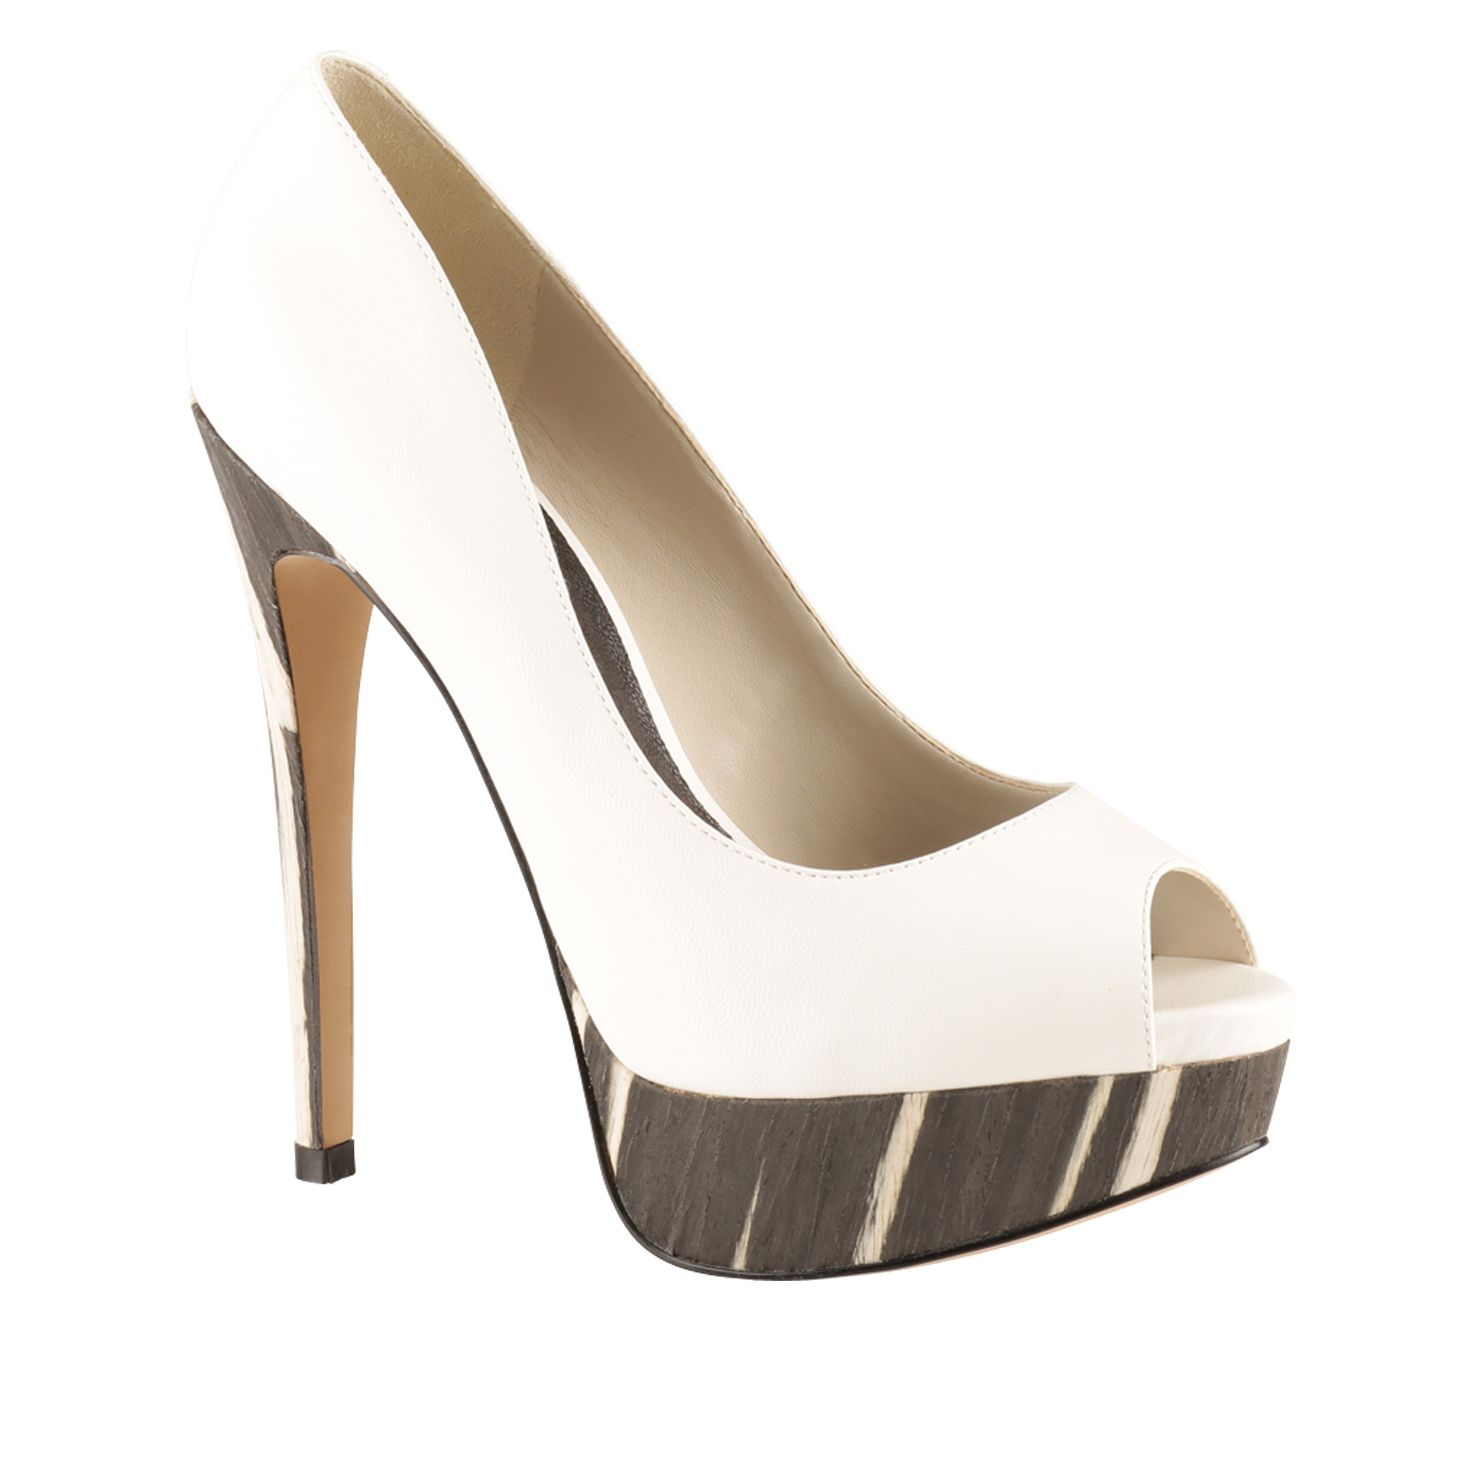 Jakoubek peep toe platform court shoes